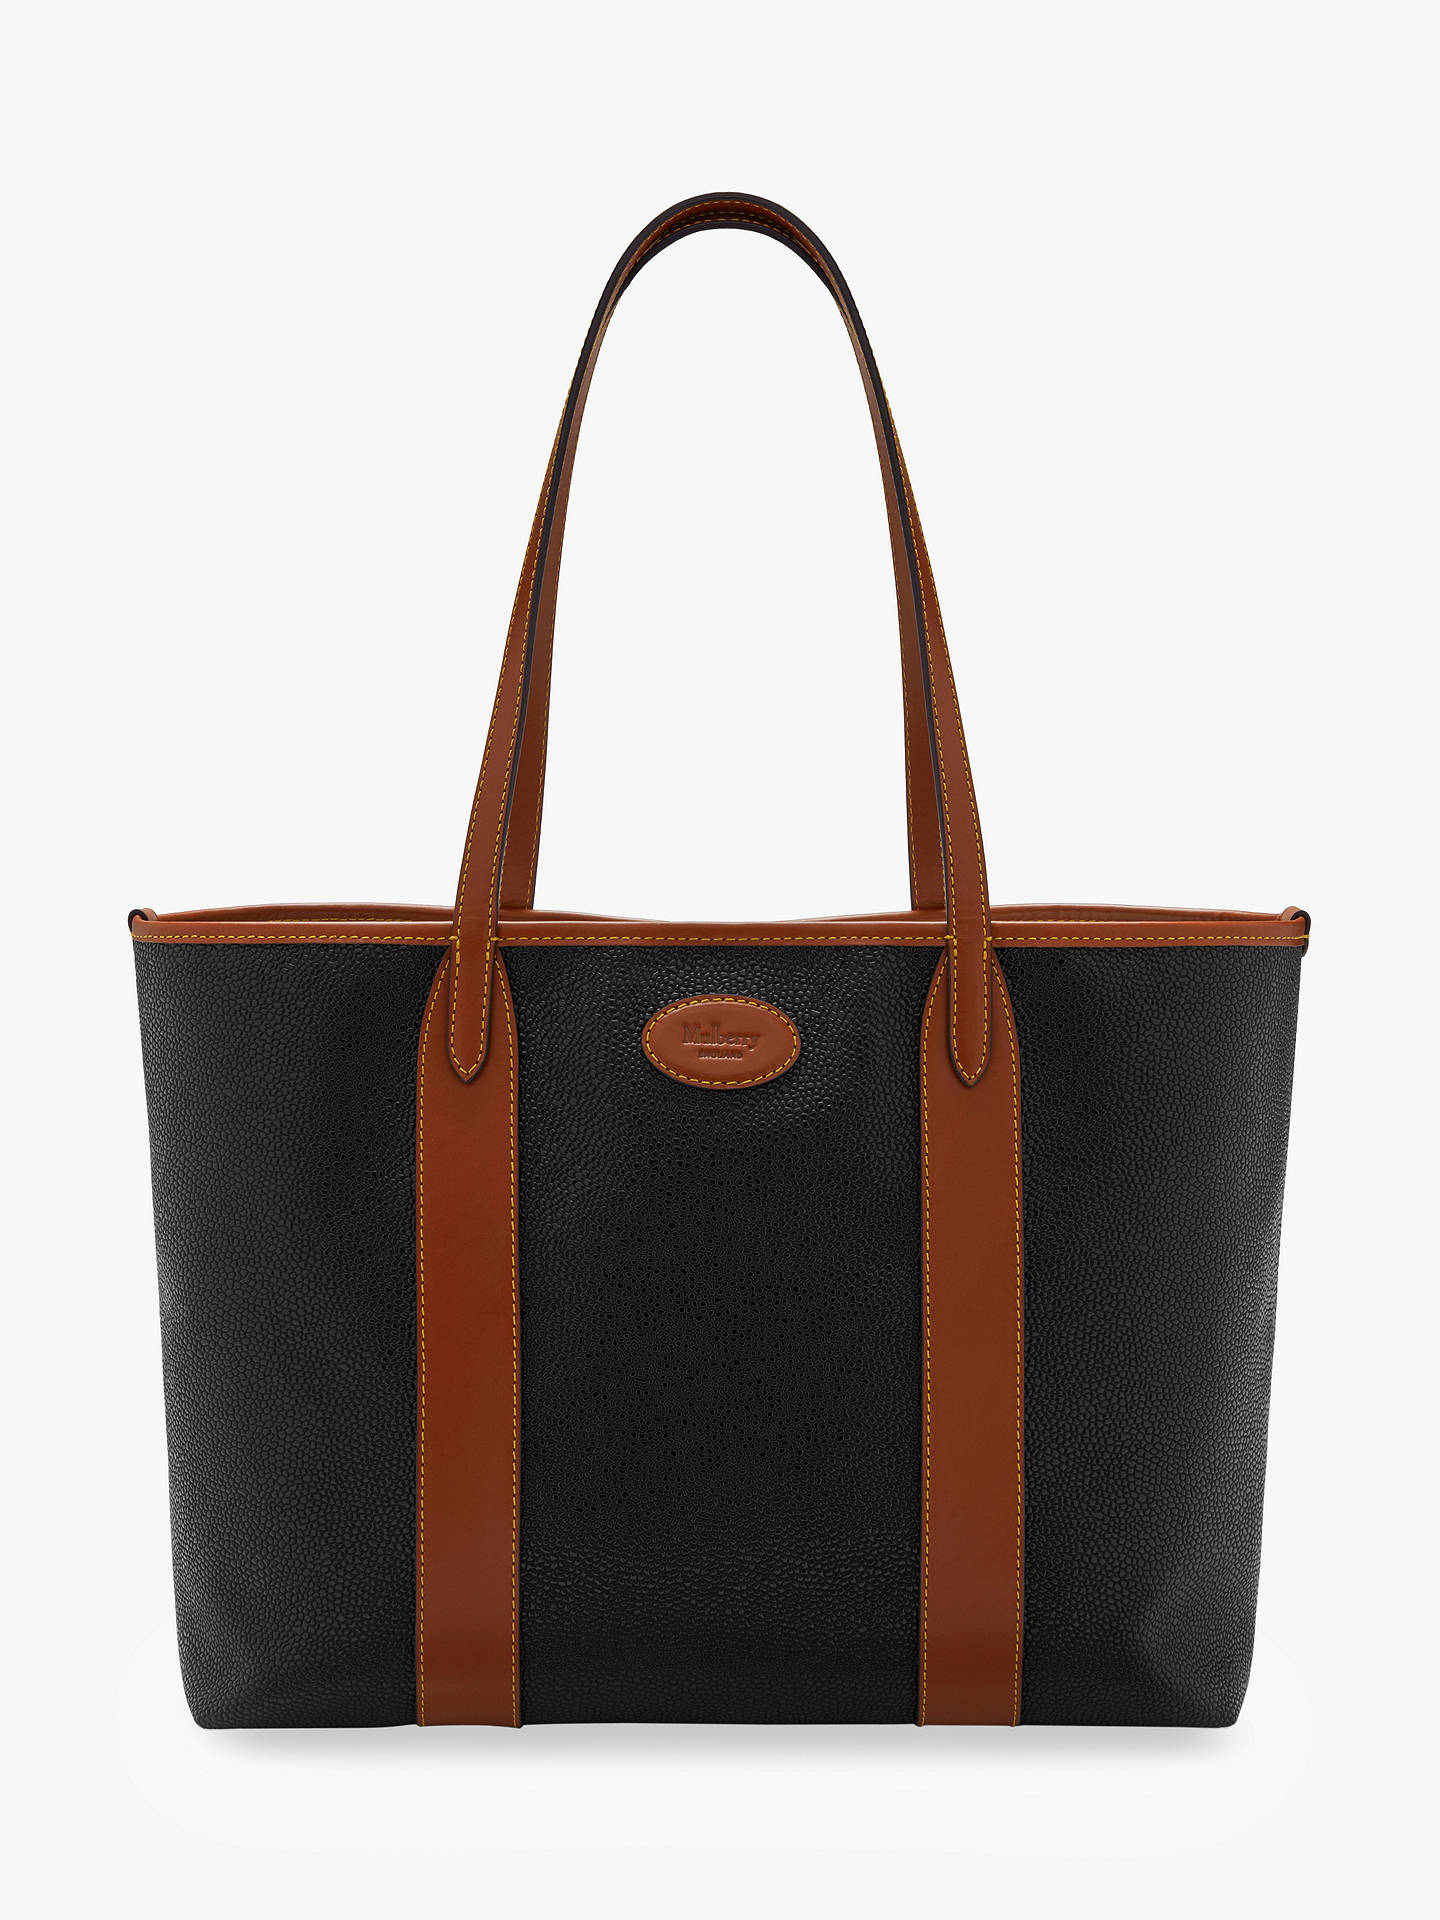 7ee19827faf Buy Mulberry Bayswater Scotchgrain Tote Bag, Black/Cognac Online at  johnlewis.com ...